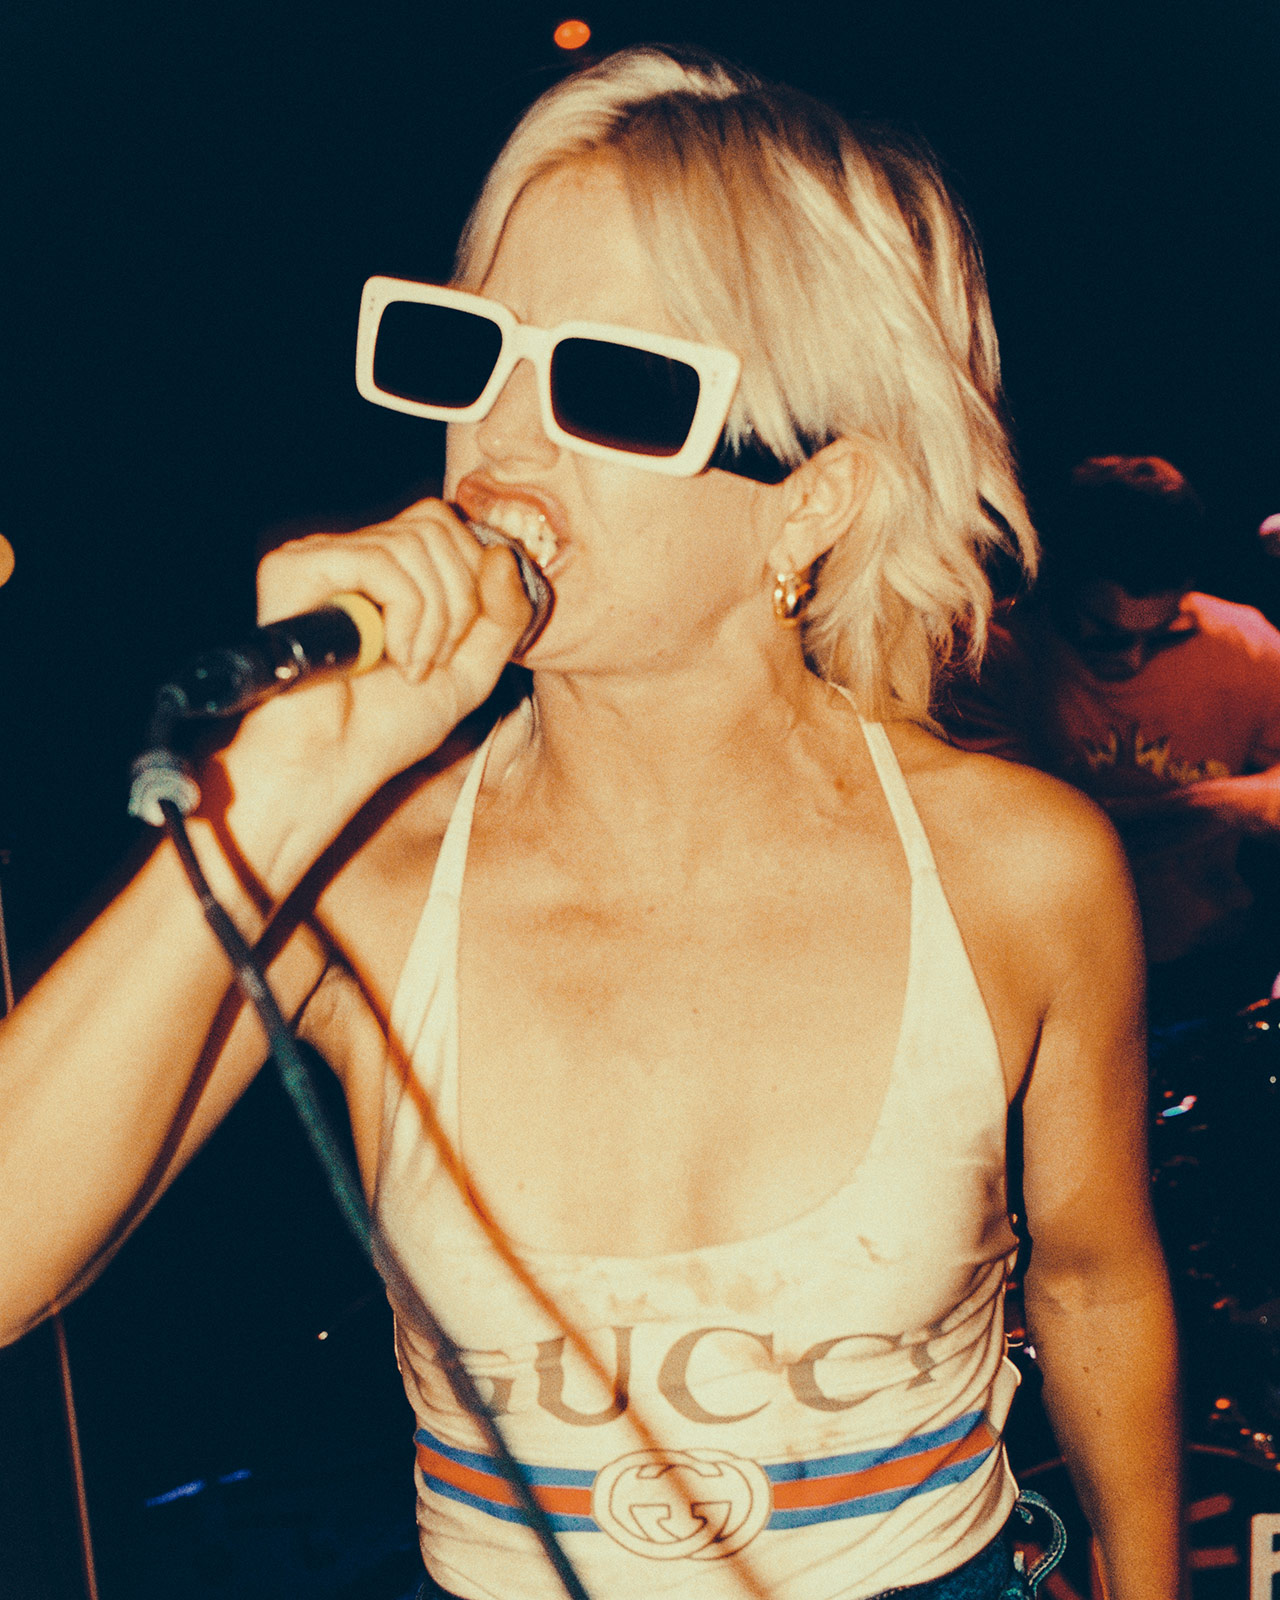 Guccigig amyl and the sniffers 3 courtesy of gucci